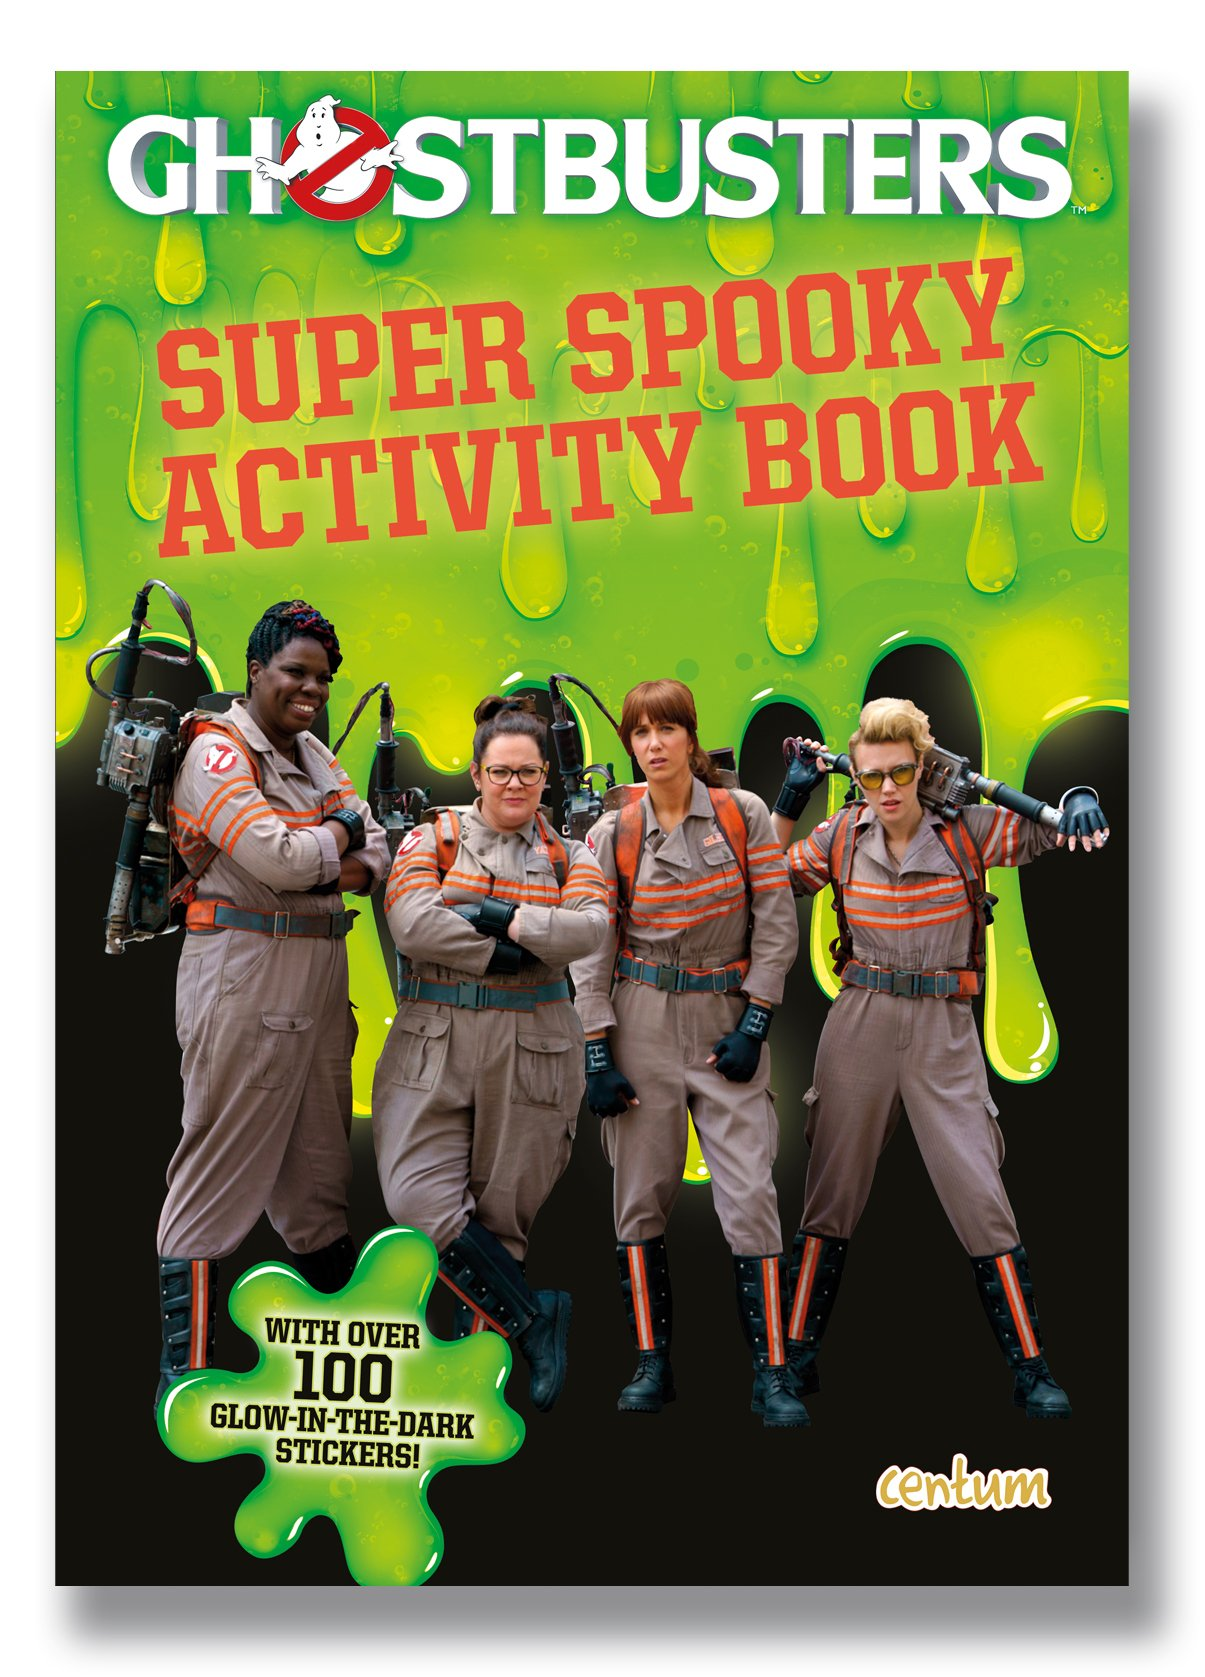 Ghostbusters Super Spooky Activity Book